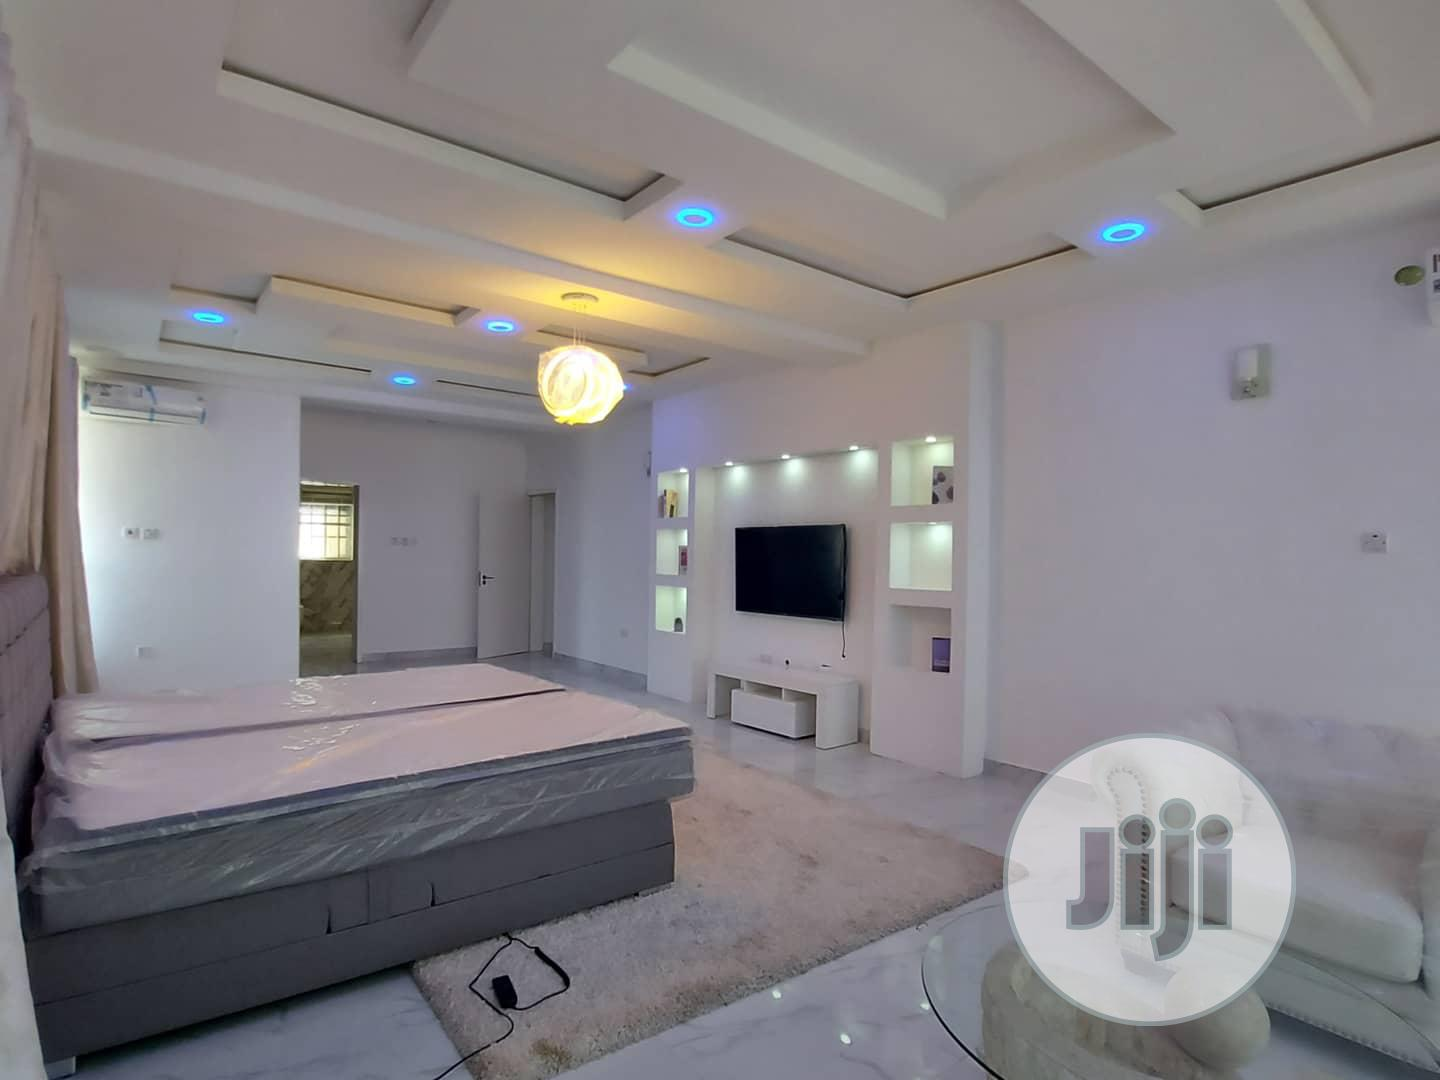 Brand New Fully Furnished 5bedroom Contemporary House+CINEMA | Houses & Apartments For Sale for sale in Lekki Phase 1, Lekki, Nigeria